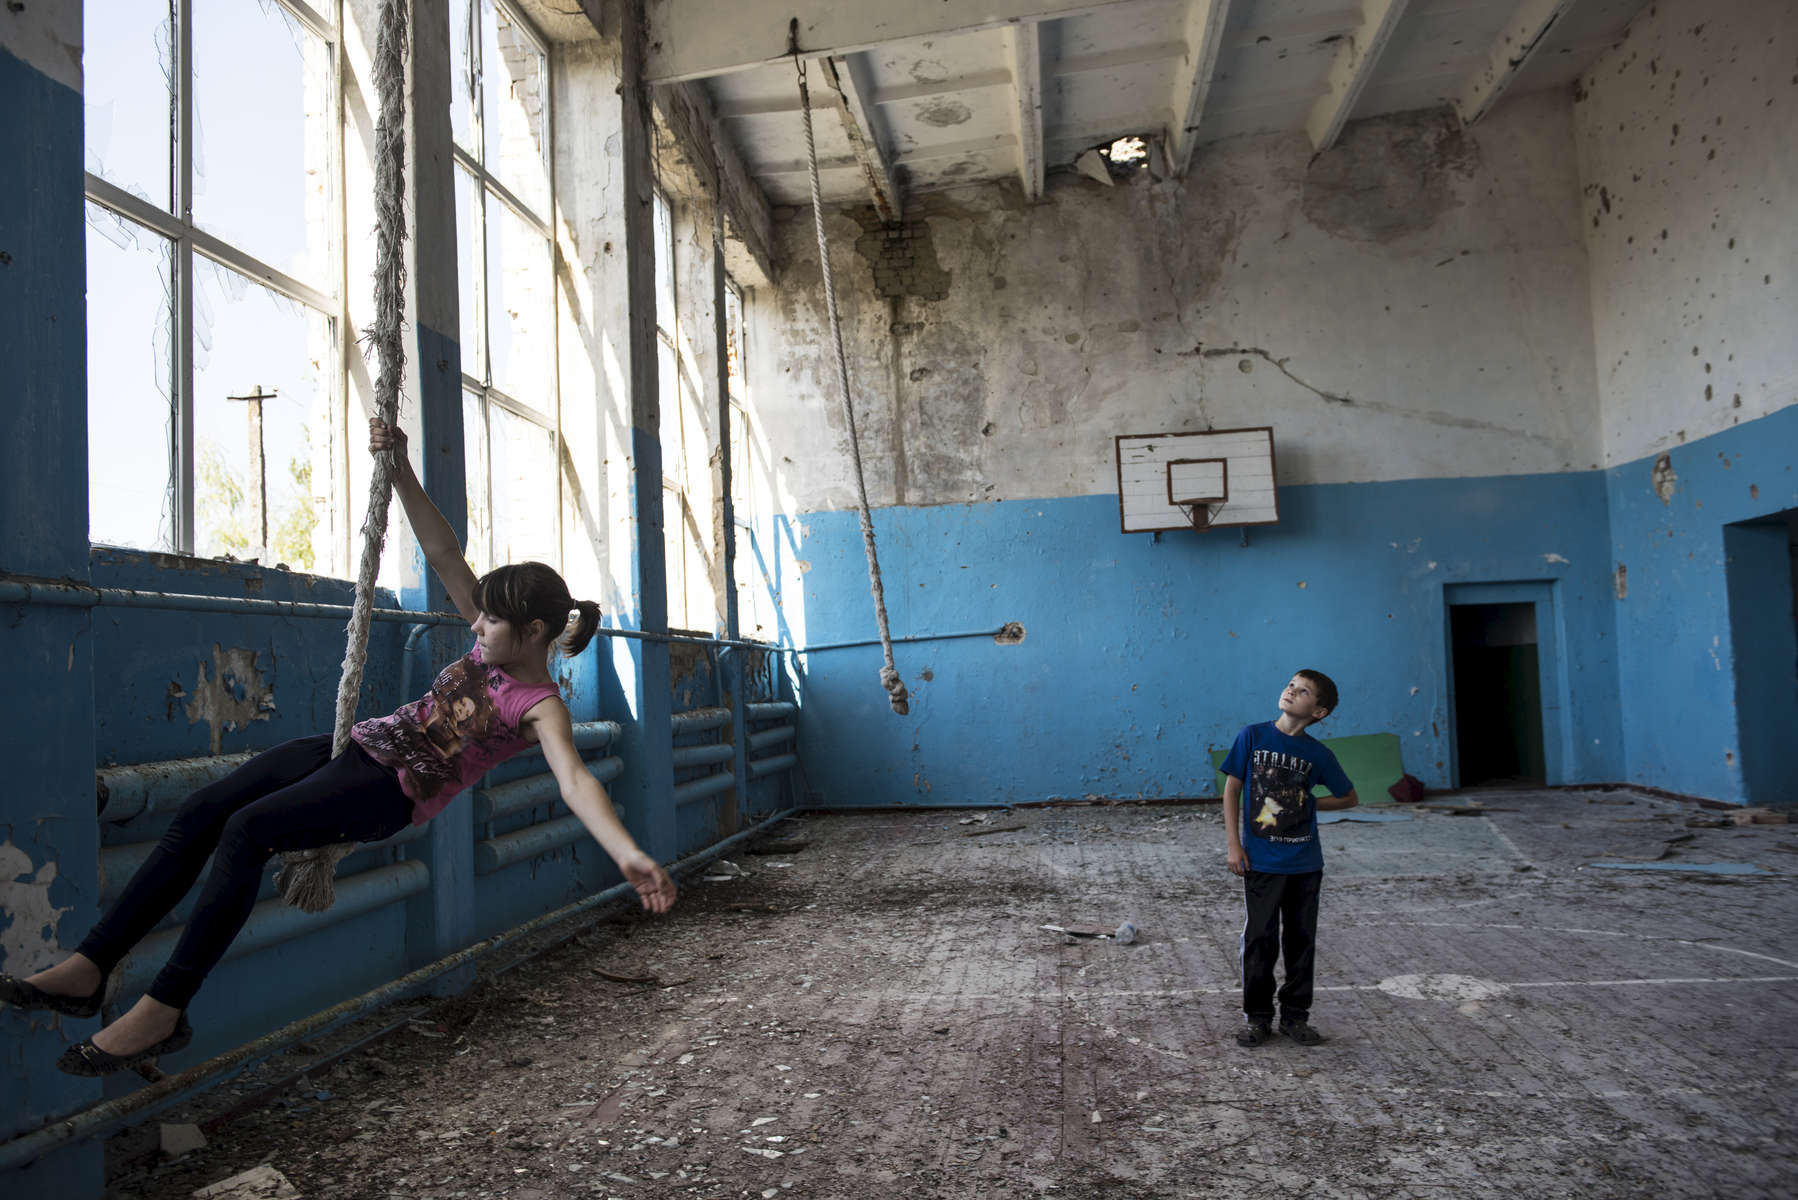 Oleg Teryokhin plays with his cousin, Victoria Pitsul, 13, in the old gym in his former school in Nikishino village, which was destroyed by the east Ukraine war, September 27, 2015, in DNR territory.  Nikishino village was far from the sites of early skirmishing and neither side bothered trying to control this small village until it turned out it was on the path of a major Ukrainian offensive begun in July with the goal of encircling Donetsk city, the provincial capital. Using long-range artillery and spotter aircraft to target it, the Ukrainian army was pushing separatists back from one town after another. Galina Teryokhina, Oleg's mother, said residents didn't take the war seriously until mid July, 2014. Oleg was playing outside in the afternoon when loud explosions were heard in the sky. Later, some papers with English writing and bits of charred clothes fluttered through the village, and Oleg picked some up. Nikishino village was at the edge of the debris field of the Malaysia Airlines Flight 17, likely shot down by rebels who mistook it for a Ukrainian spotter aircraft.